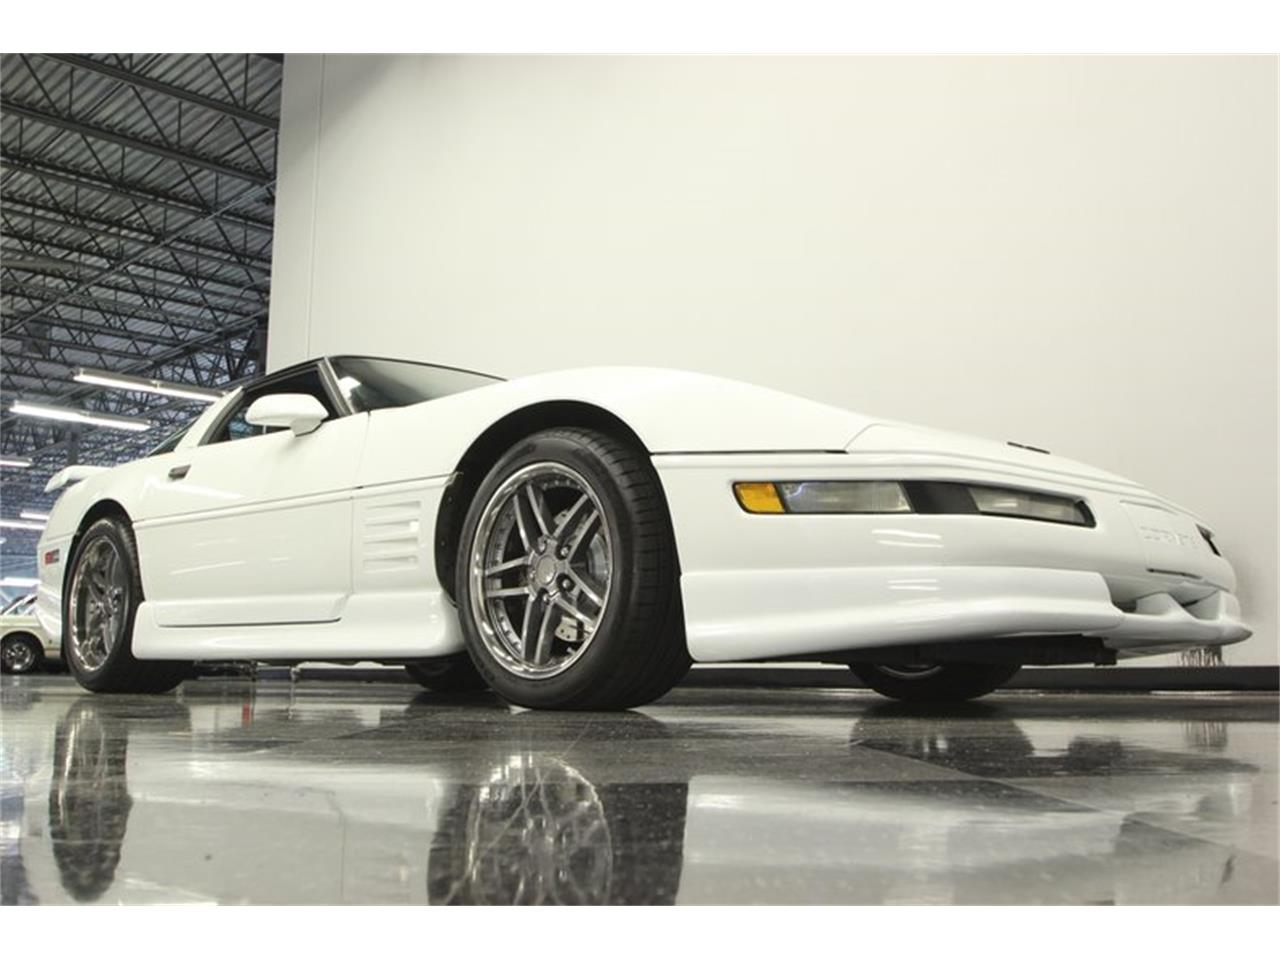 Large Picture of '93 Chevrolet Corvette located in Florida - $14,995.00 - P3IH